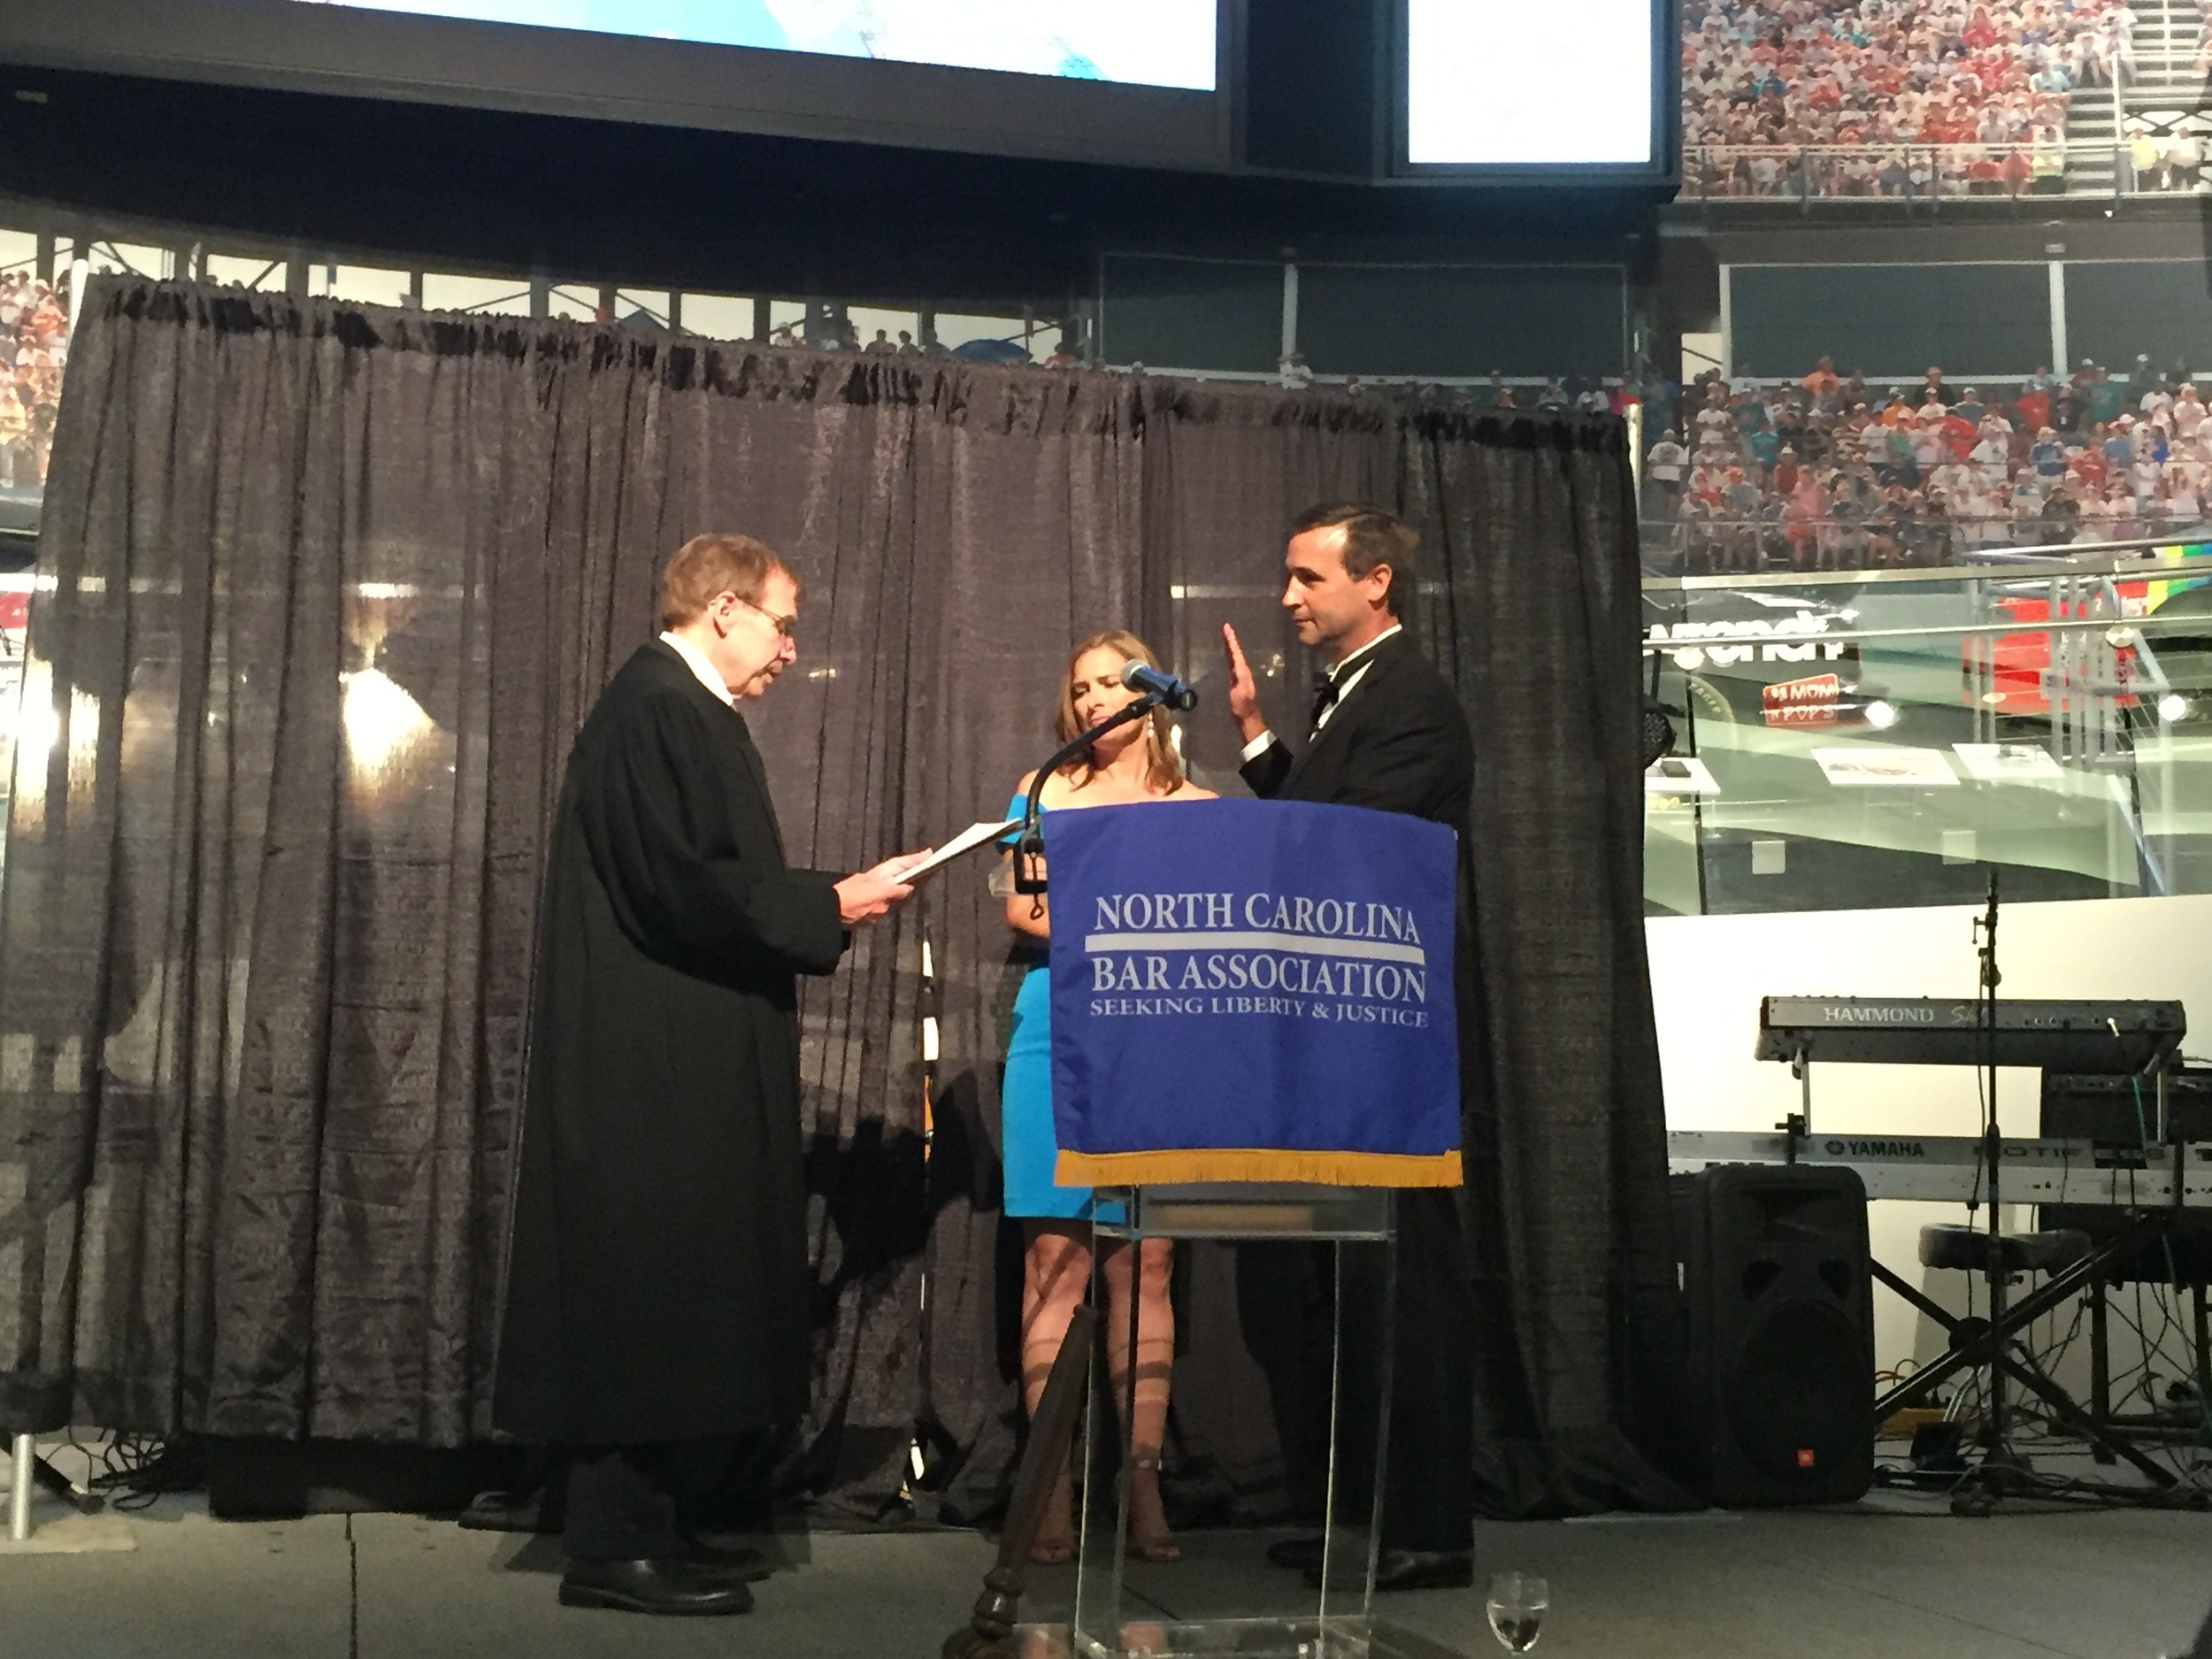 Administering oath of office to incoming N.C. Bar Association president Kearns Davis at NASCAR Hall of Fame, June 25, 2016.